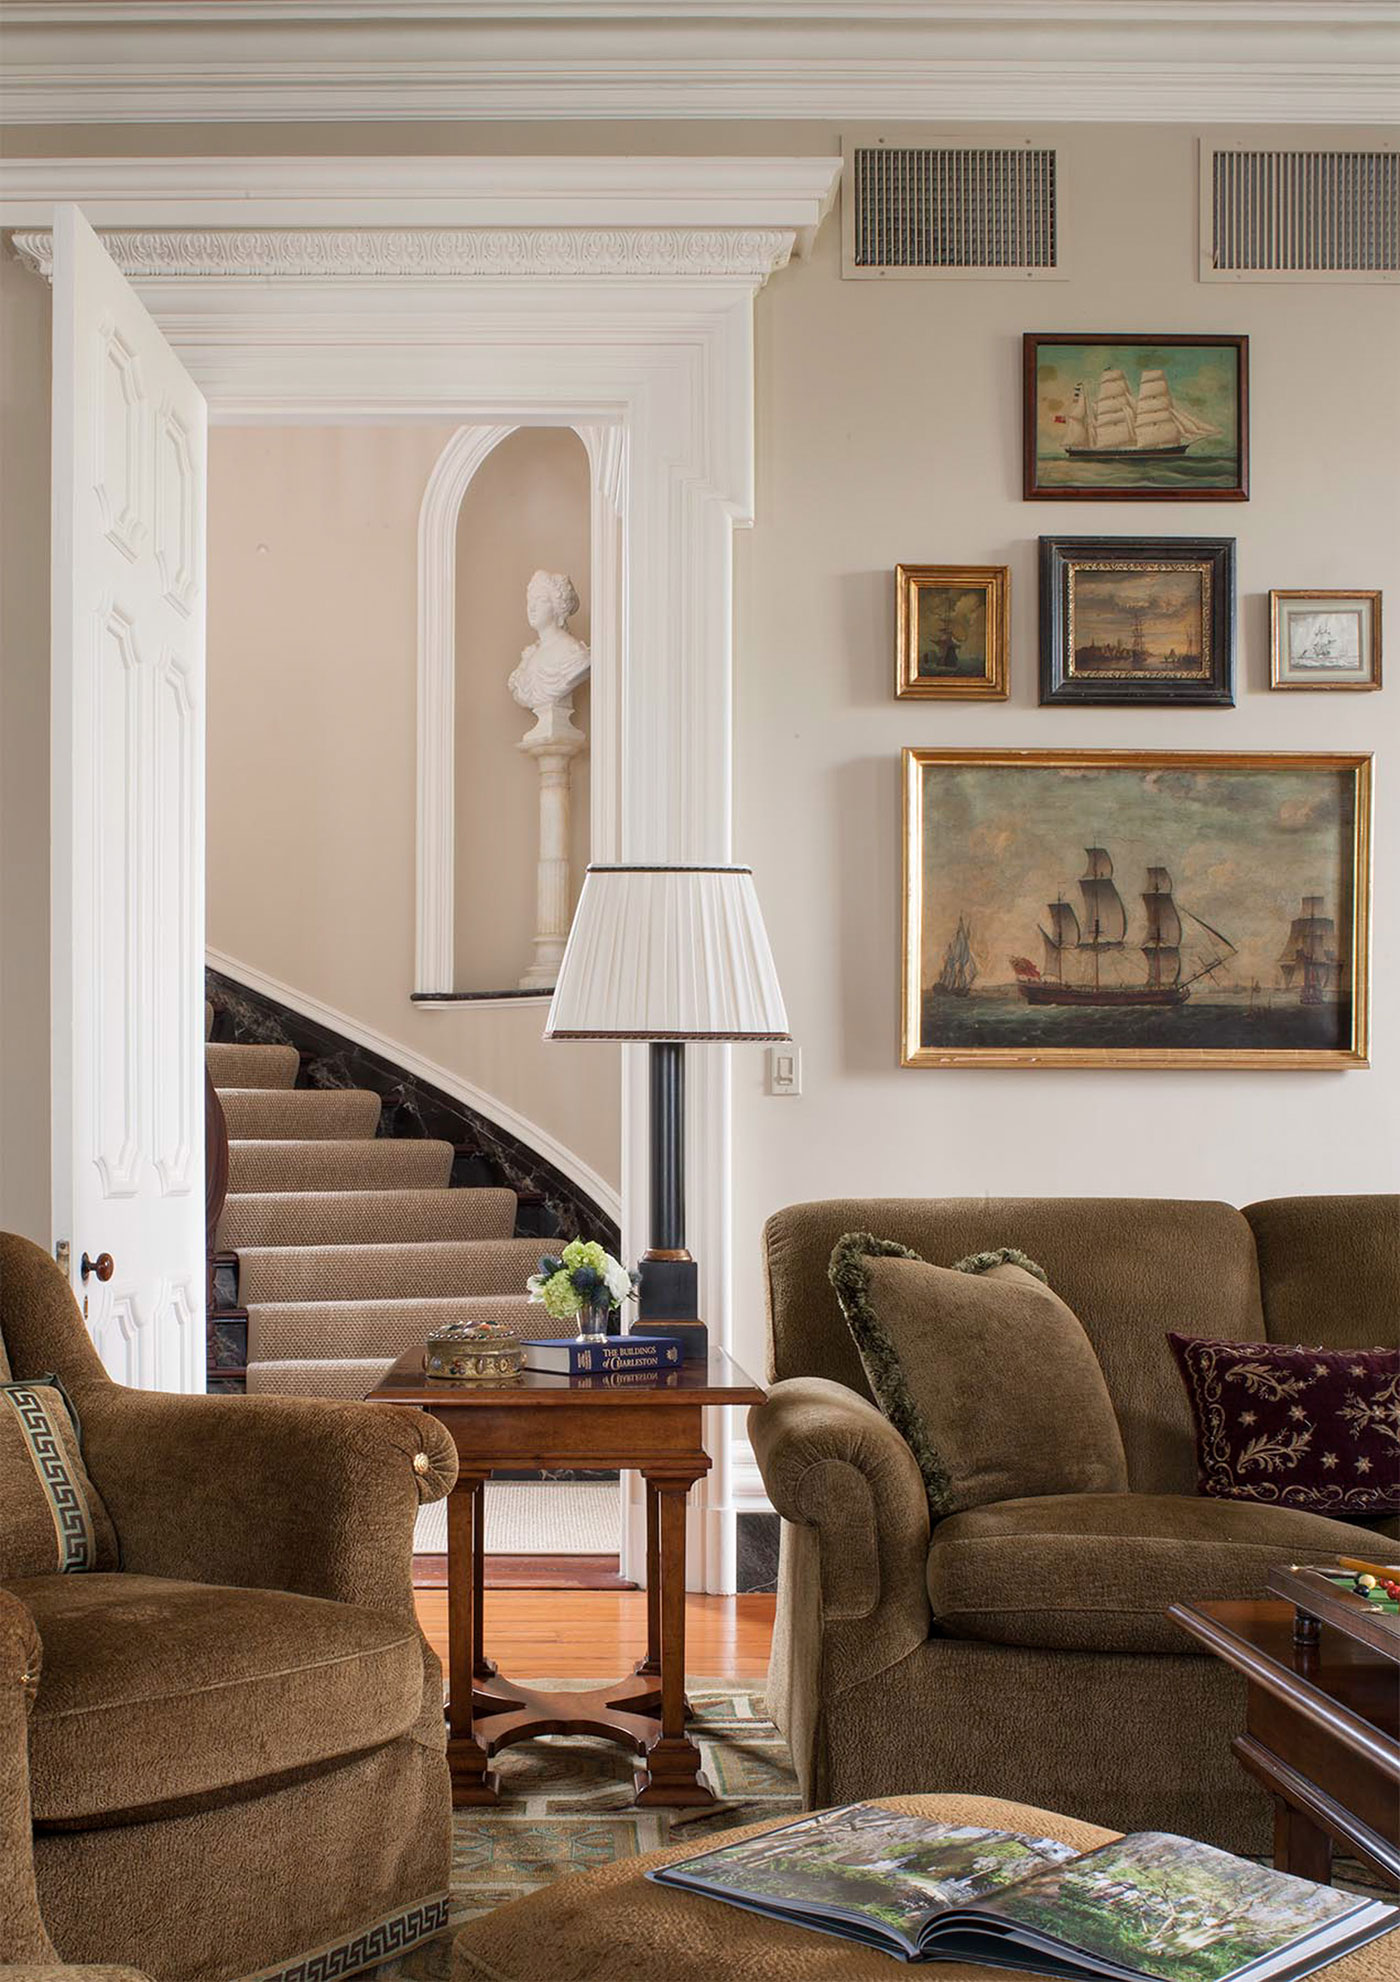 Classical busts in interior design